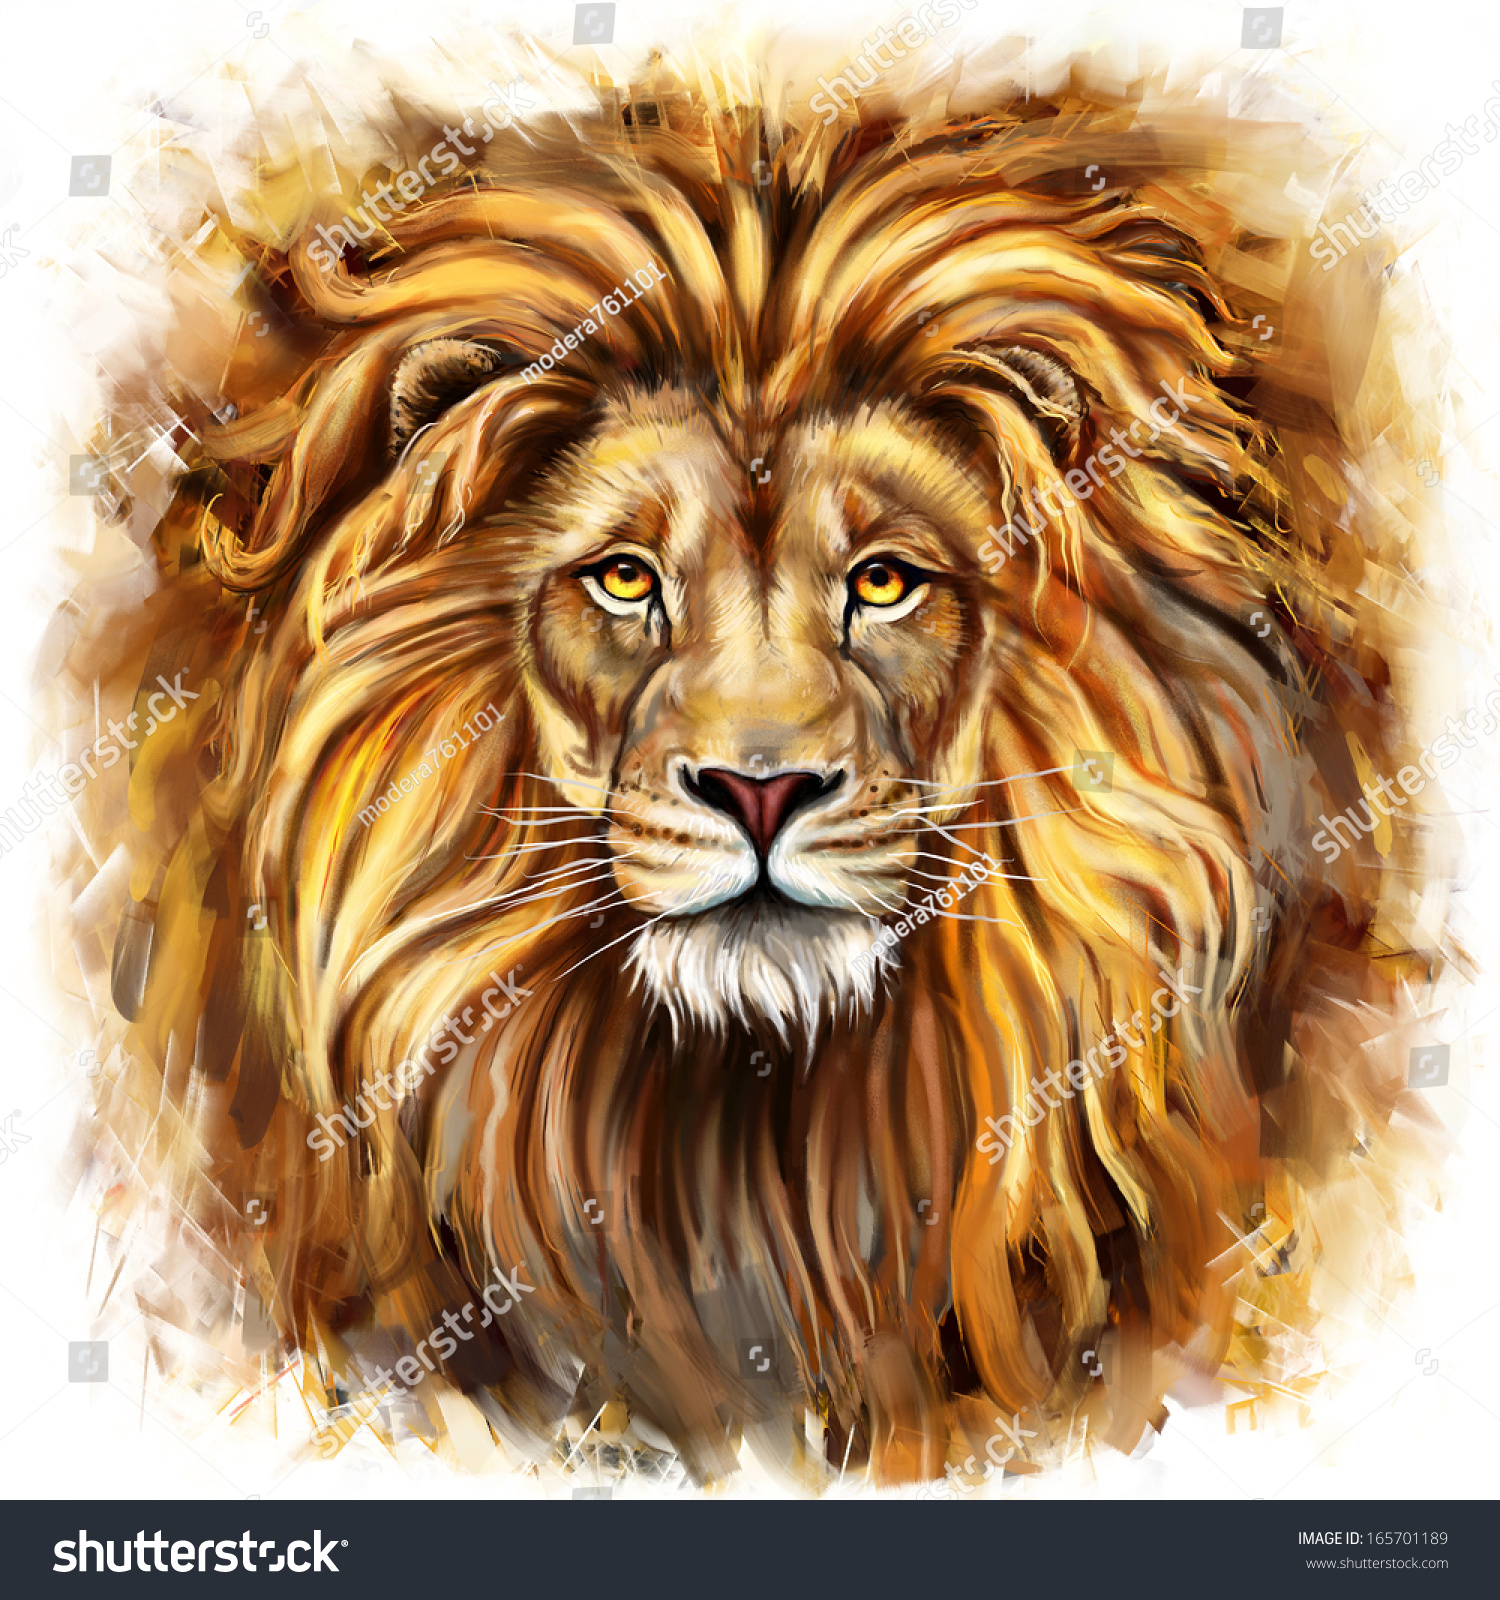 Front Facing Lion Painting